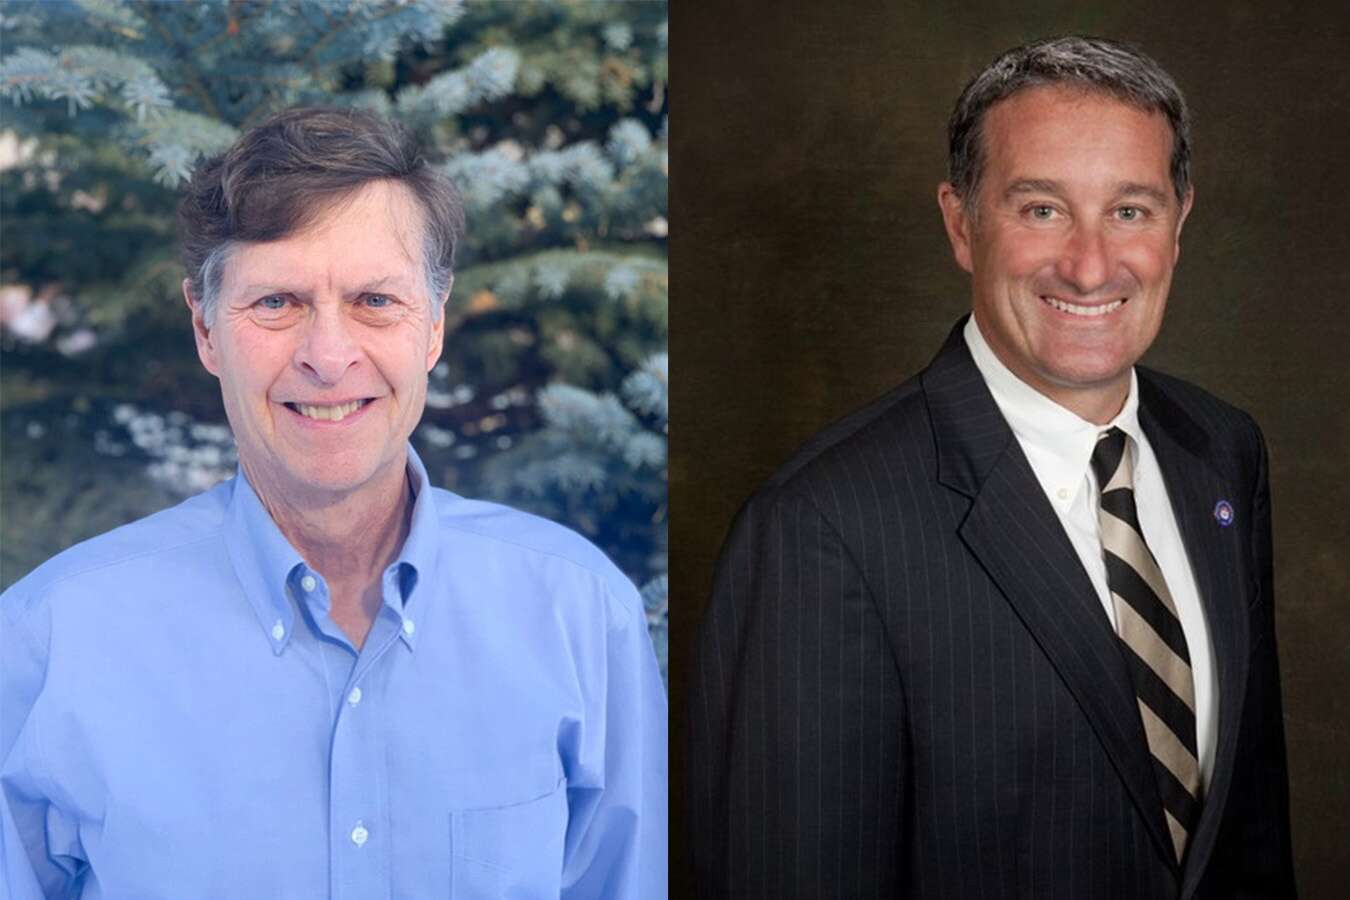 An Air Force veteran and a real estate developer have joined the Snyderville Basin Planning Commission